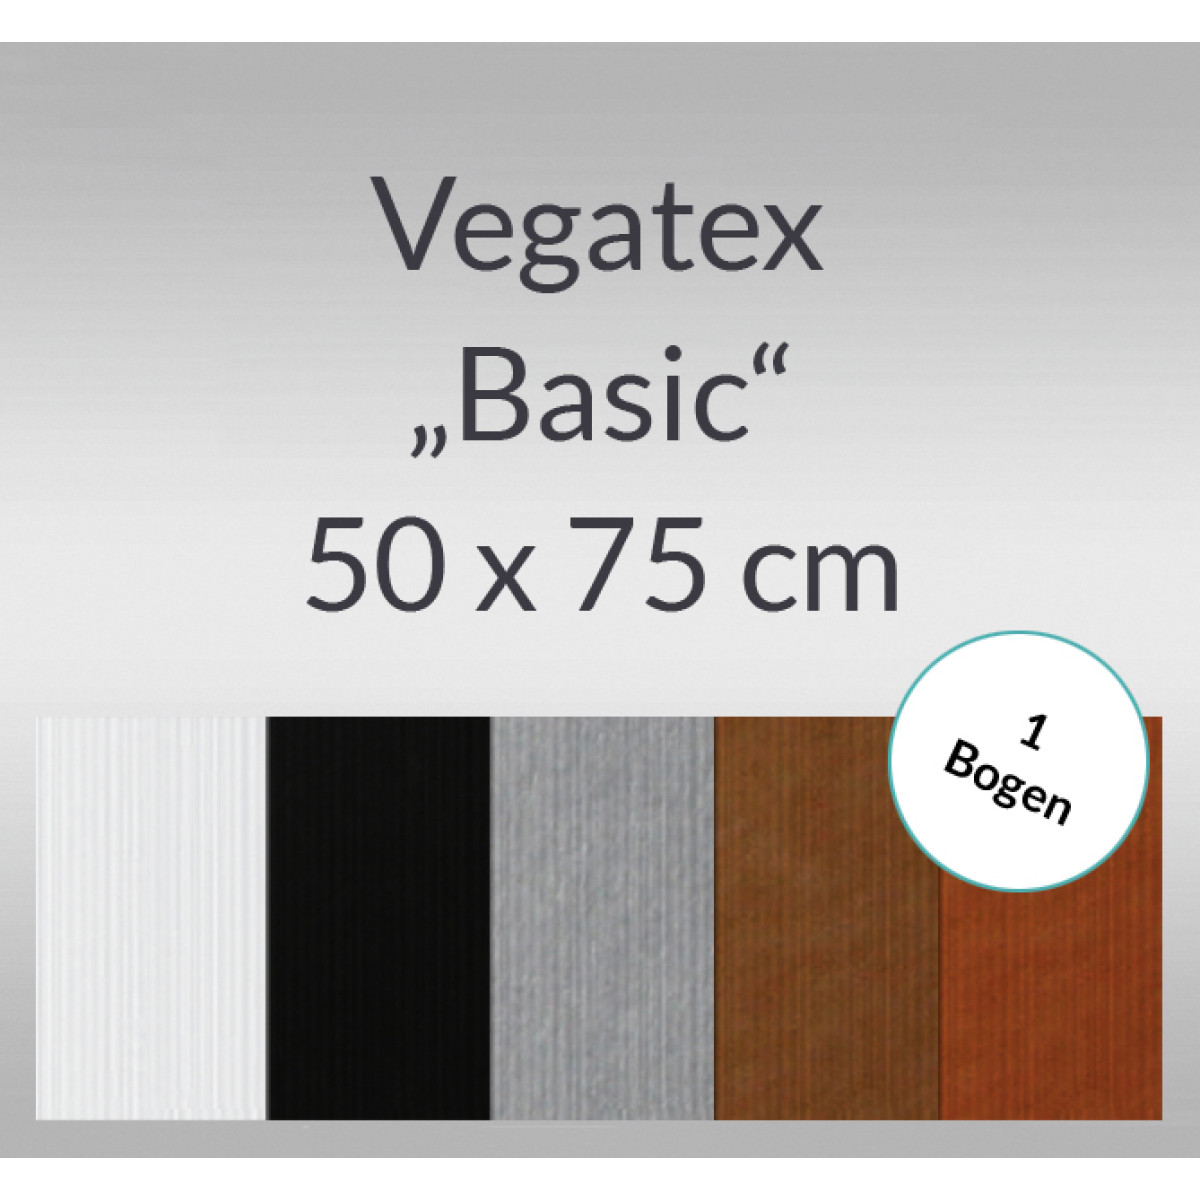 vegatex basic 50 x 75 cm 1 bogen buntpapierwelt. Black Bedroom Furniture Sets. Home Design Ideas